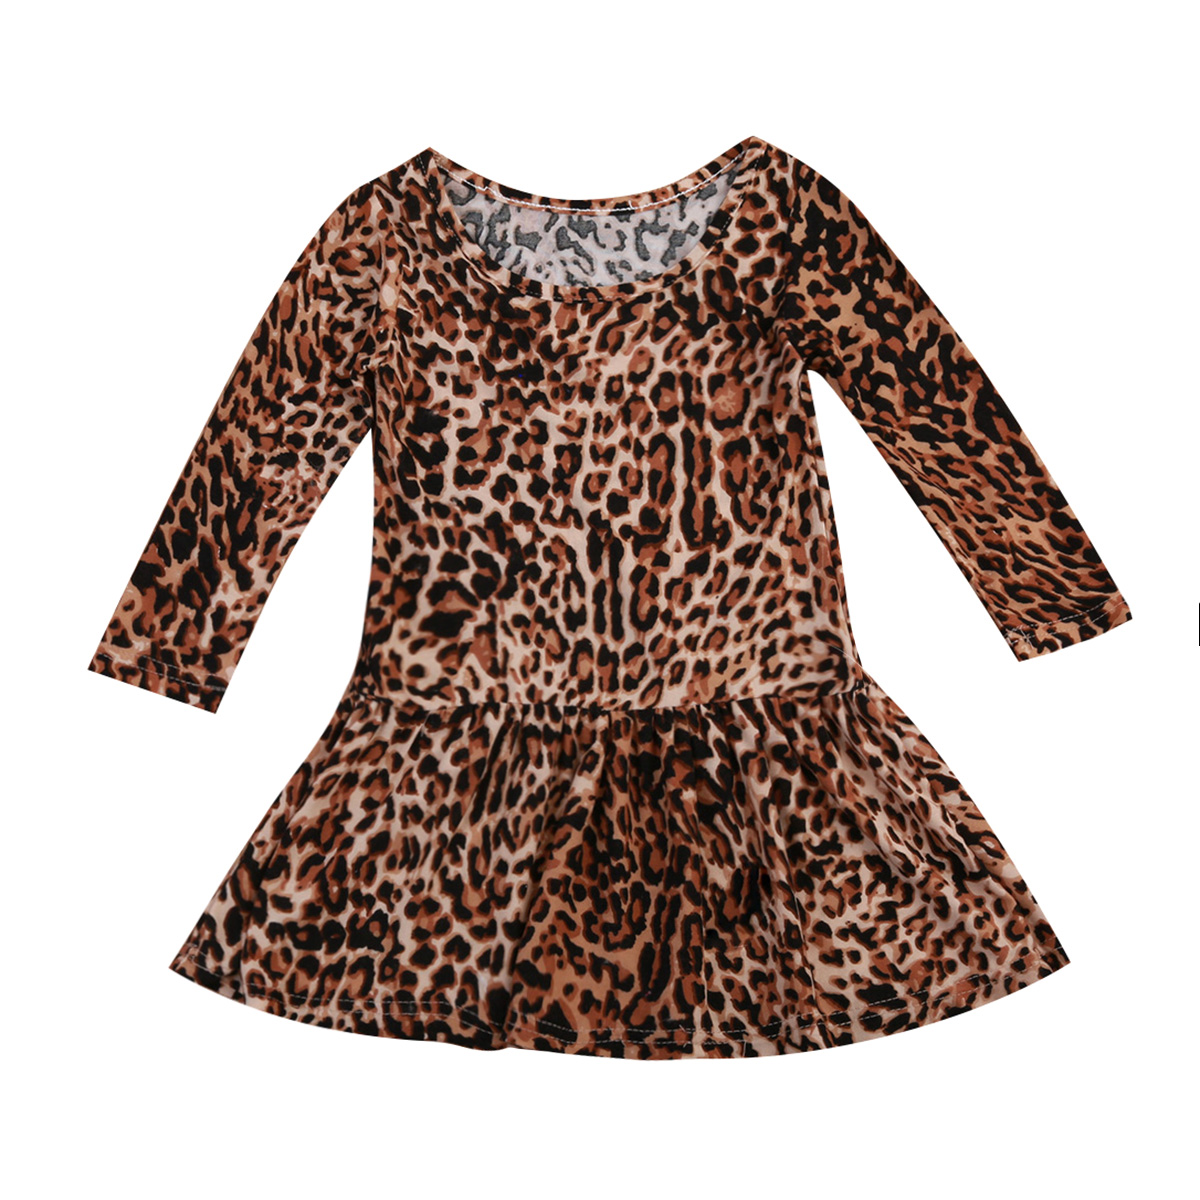 Fashion 0-24 Months Kids Baby Girls Cotton Long Sleeves Leopard Dresses Baby Autumn Winter Dress Clothes